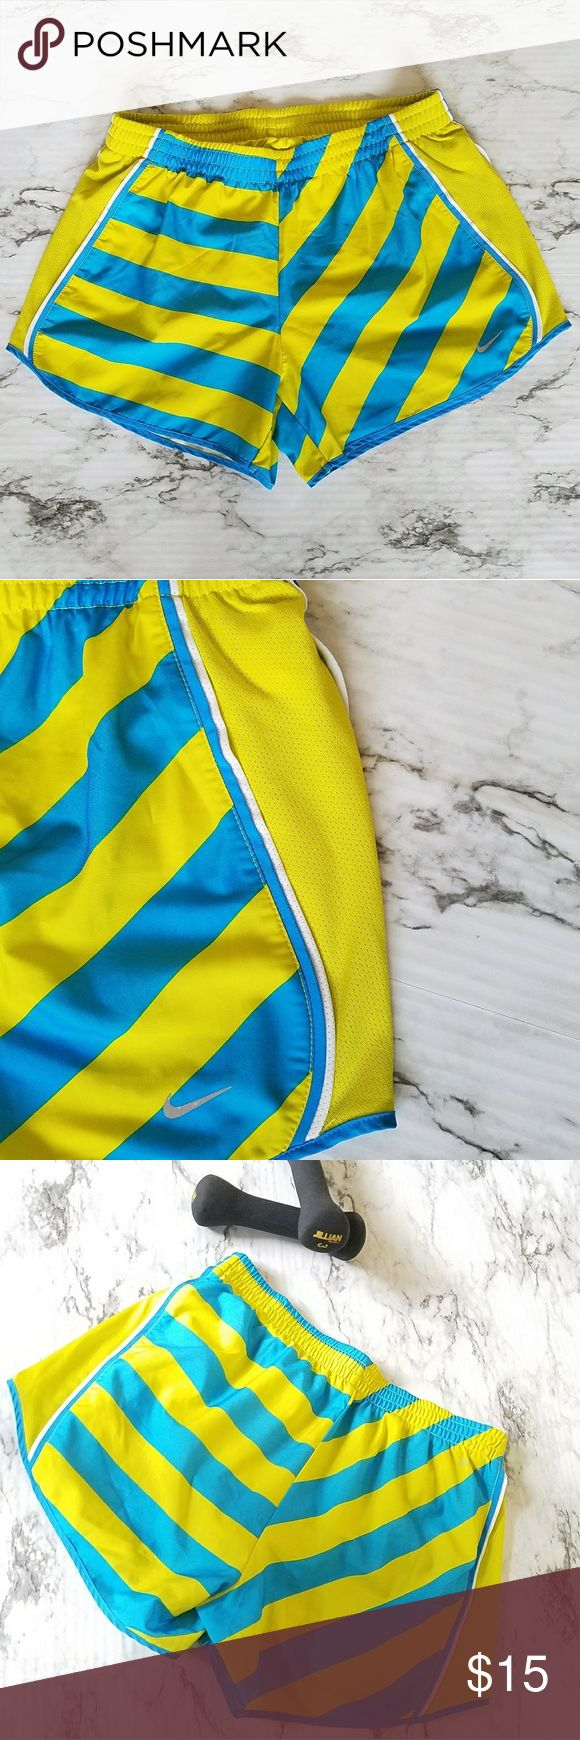 Nike Dri Fit Runing Shorts Striped Blue & Yellow M Nike Dri Fit Runing Active Shorts size M. Vibrant blue and yellow stripes. Blue & white side accent piping.  Interior drawstrings and elastic waist. Inner underwear lining Two internal pockets on the back EUC. Logo shows a small sign of wear, please see pic. Nike Shorts